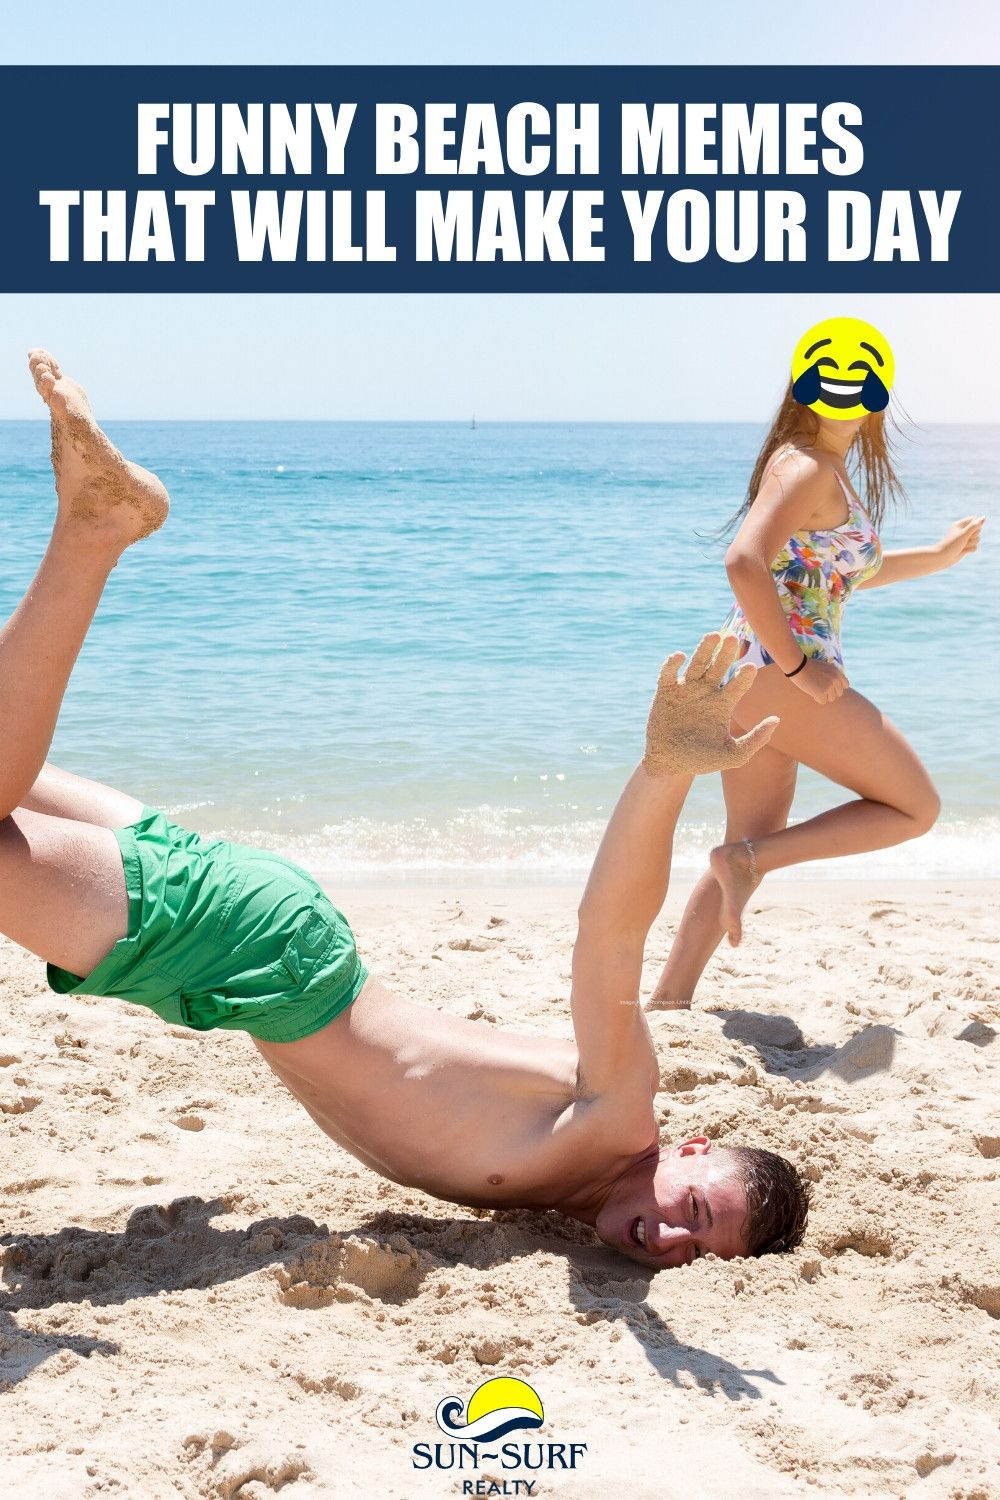 Funny Beach Memes That Will Make Your Day In 2020 Beach Memes Beach Humor Nc Beach Vacation